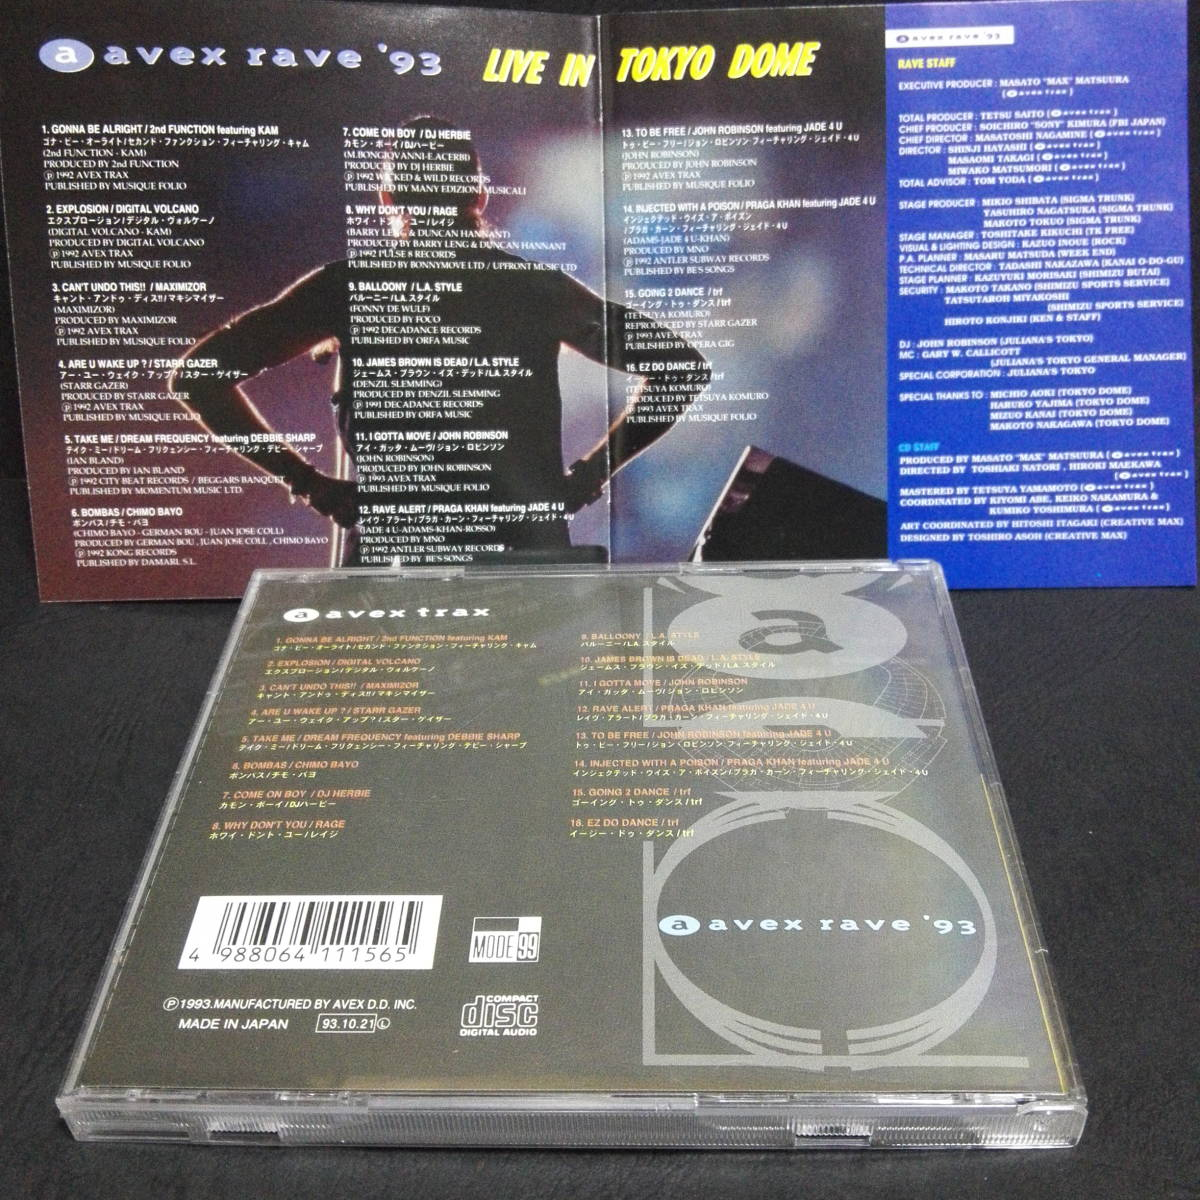 avex rave 93 LIVE in Tokyo Dome 帯付 全16曲LIVE 音源CD ジュリアナテクノ イタロ 90s DISCO JHON ROBINSON trf Maximizor L.A.STYLE_画像5